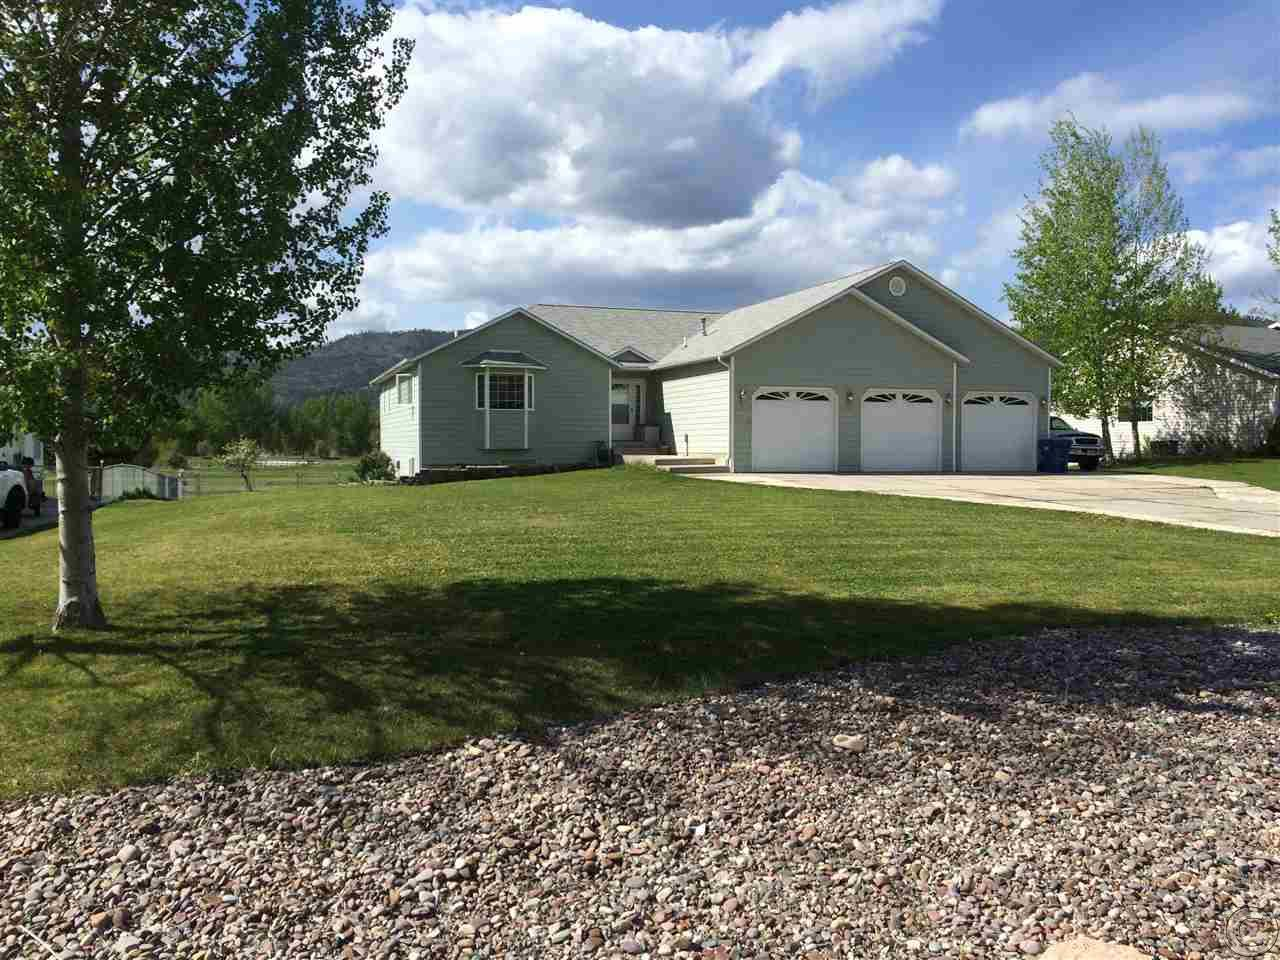 Real Estate for Sale, ListingId: 33224687, Frenchtown,MT59834